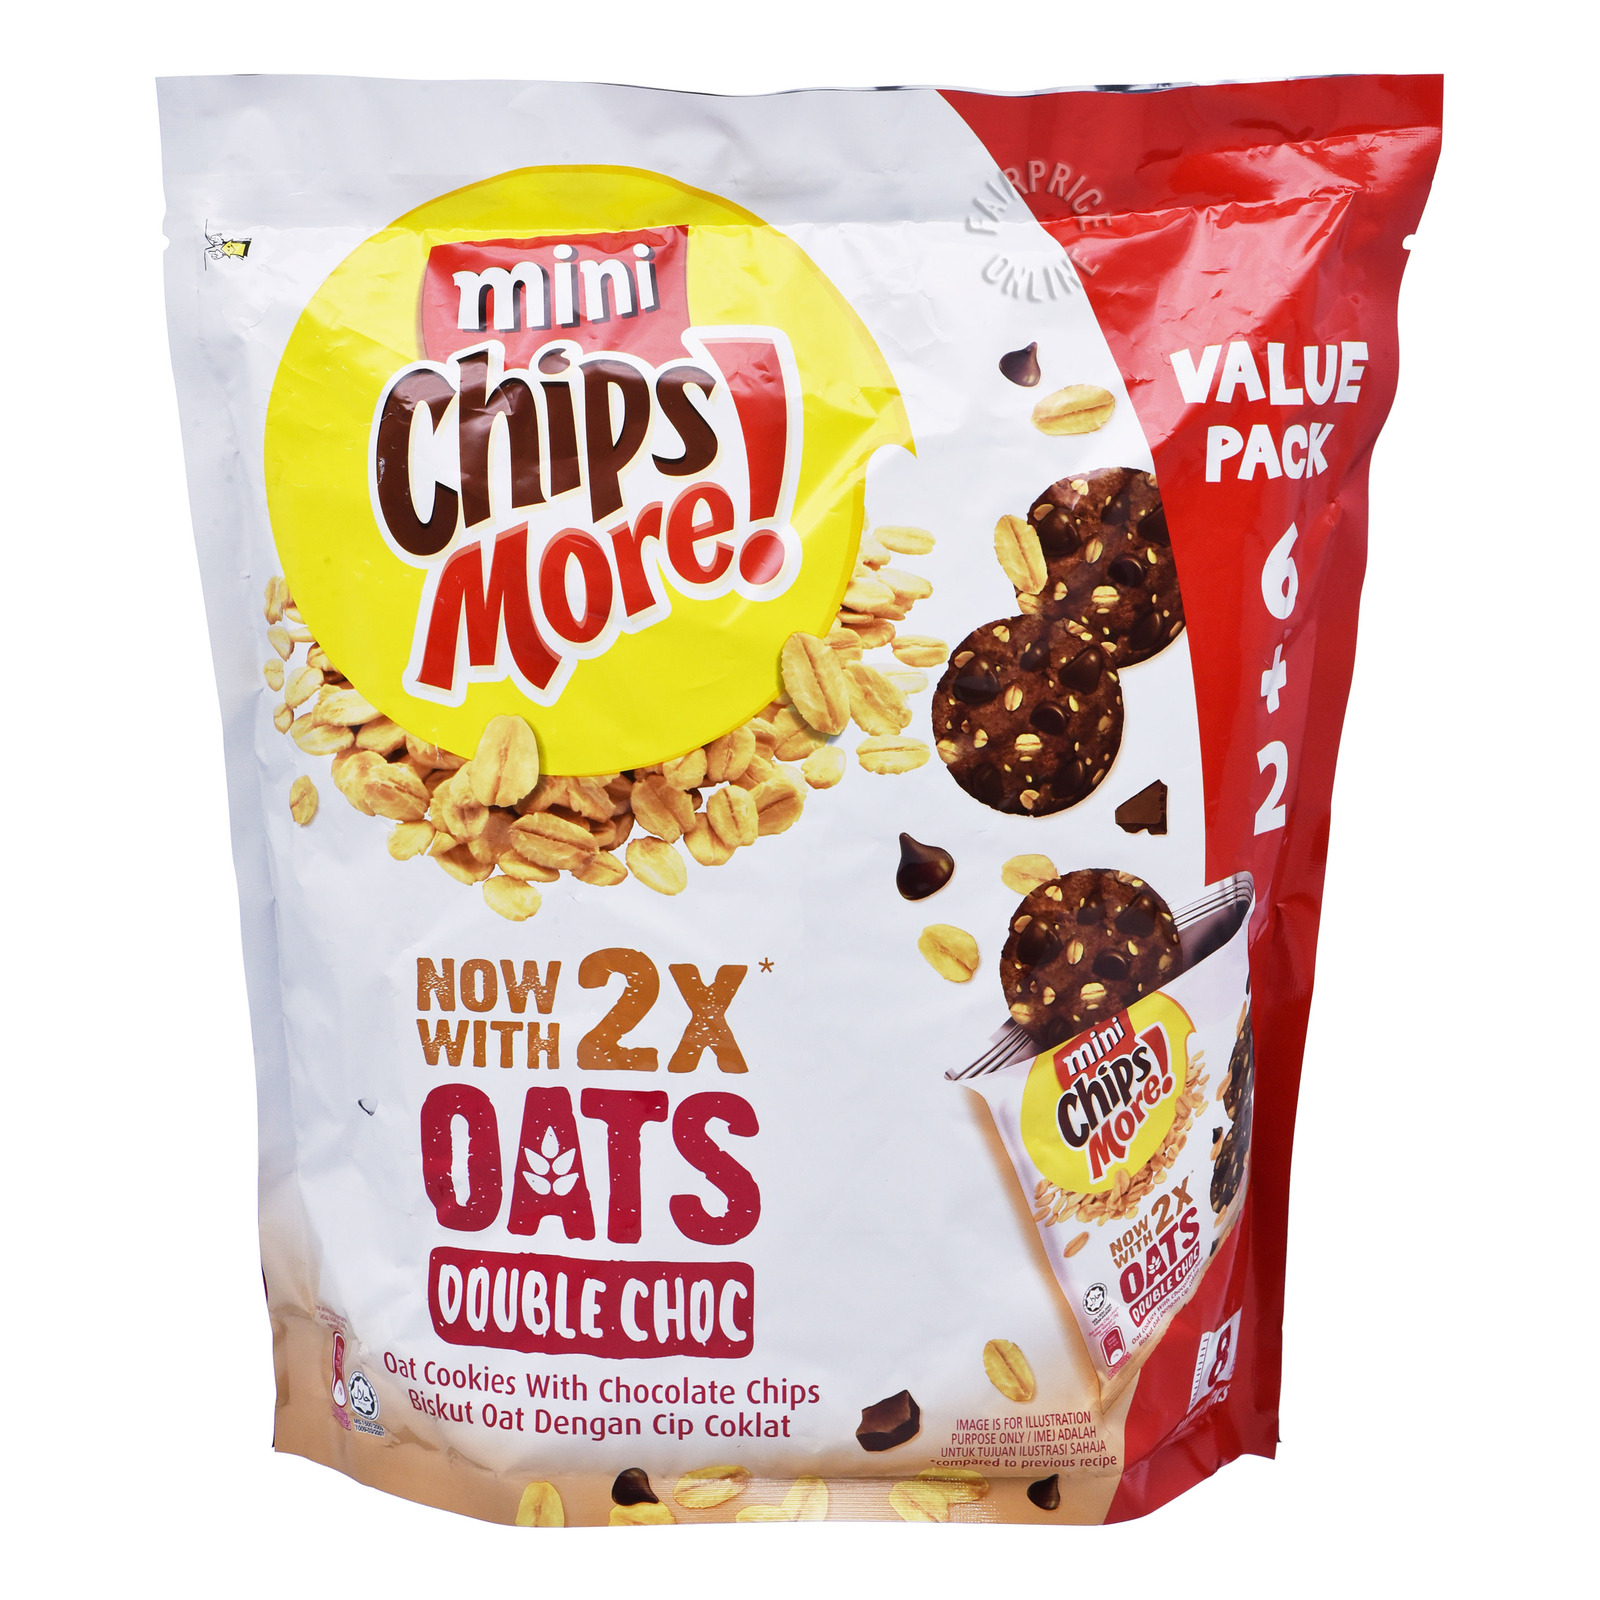 Chipsmore Chocolate Chip Cookies with Oats Minis-Double Choc